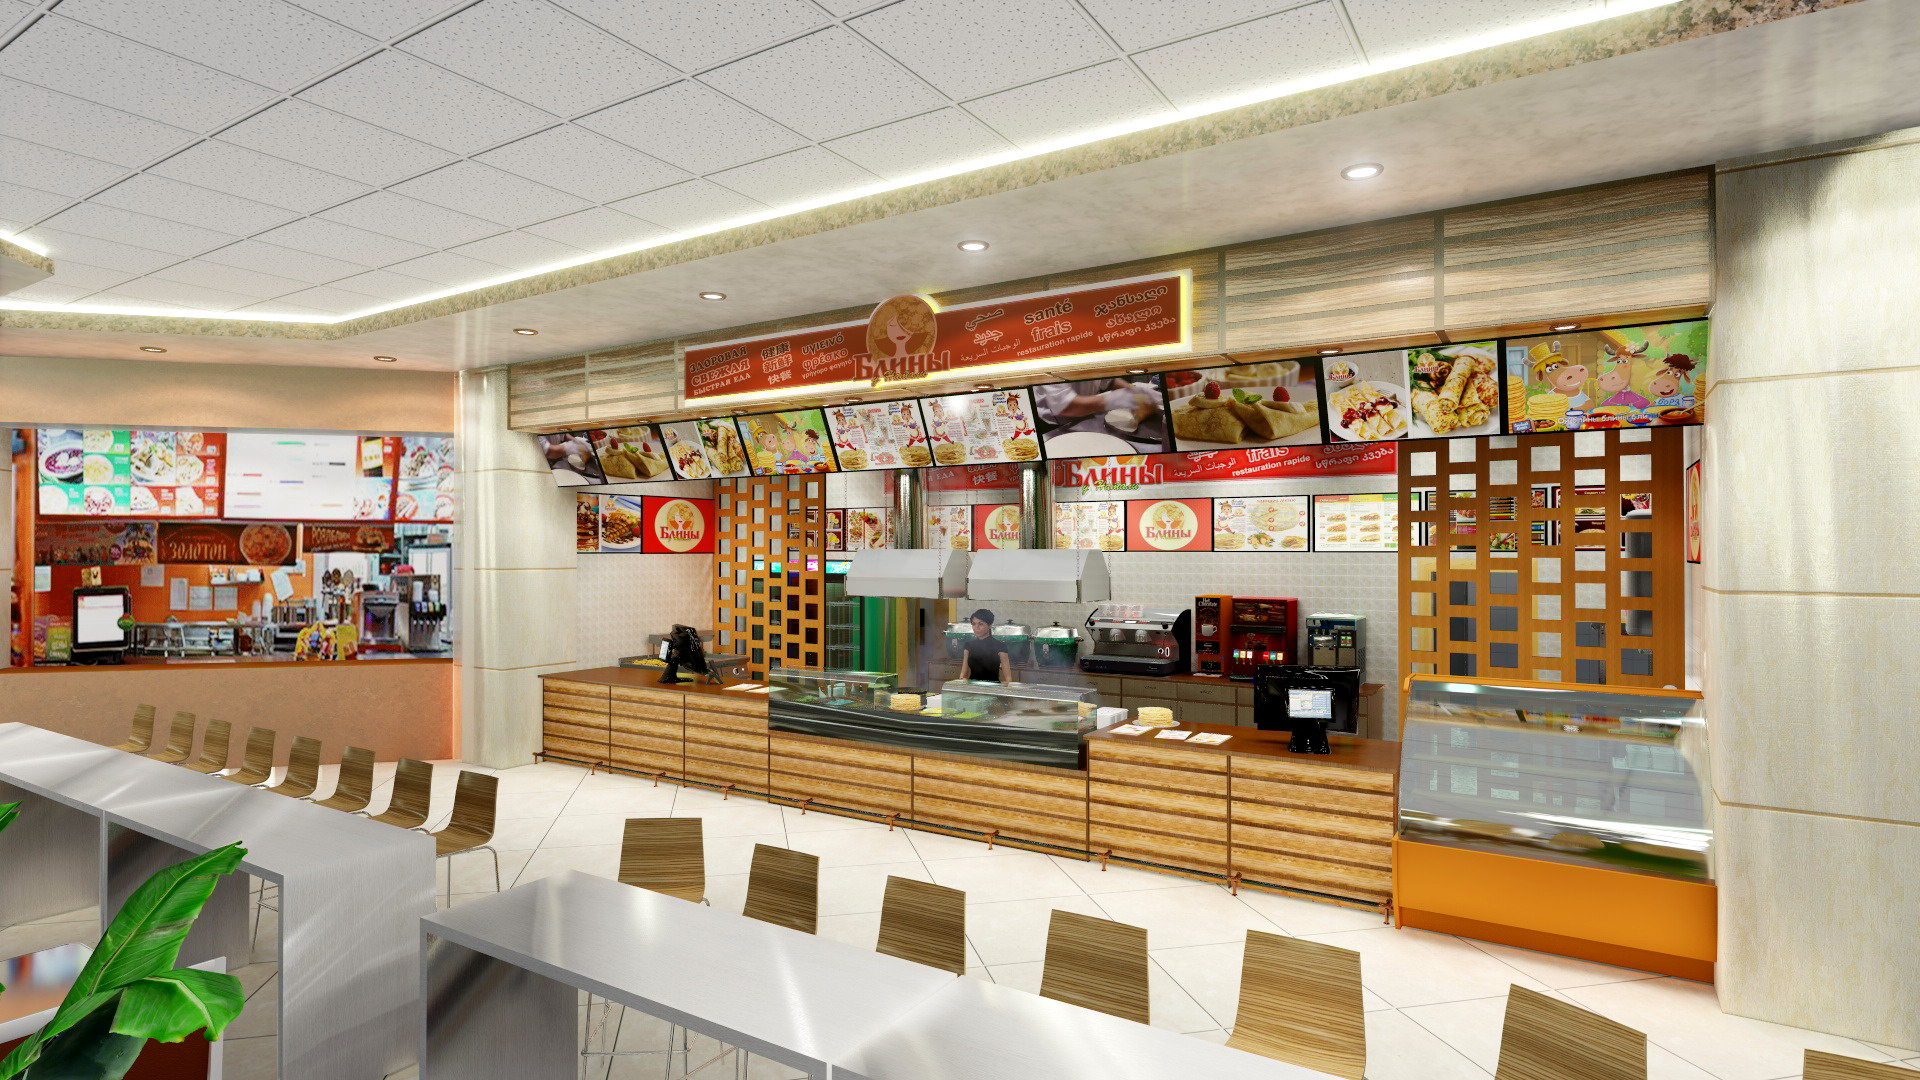 3D presentation of a brand in Foodcourt of a large fuel dispenser. (Video attached) in Cinema 4d Other image